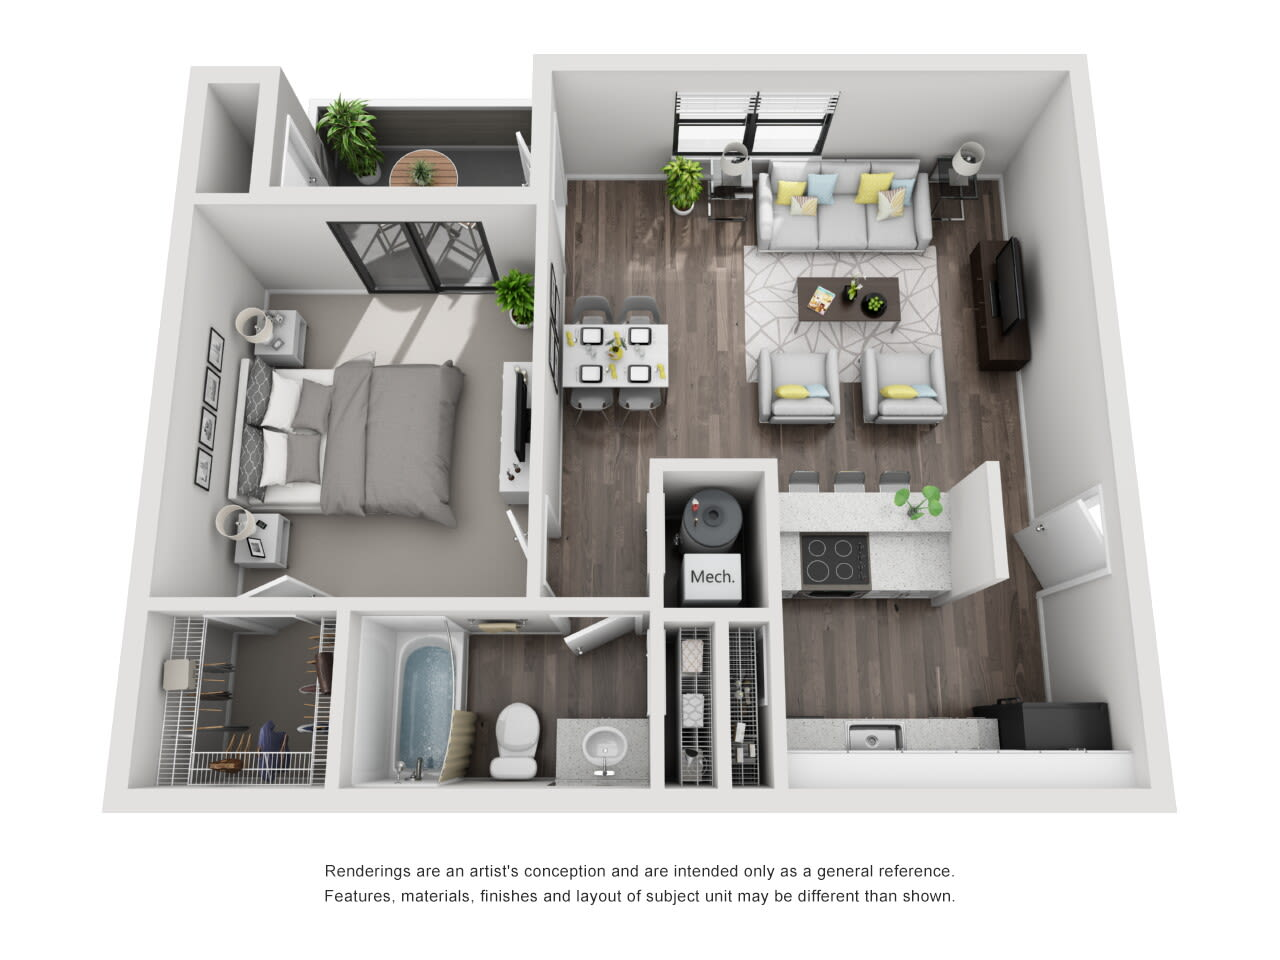 A1 1 bed 1 bath at The Alcove